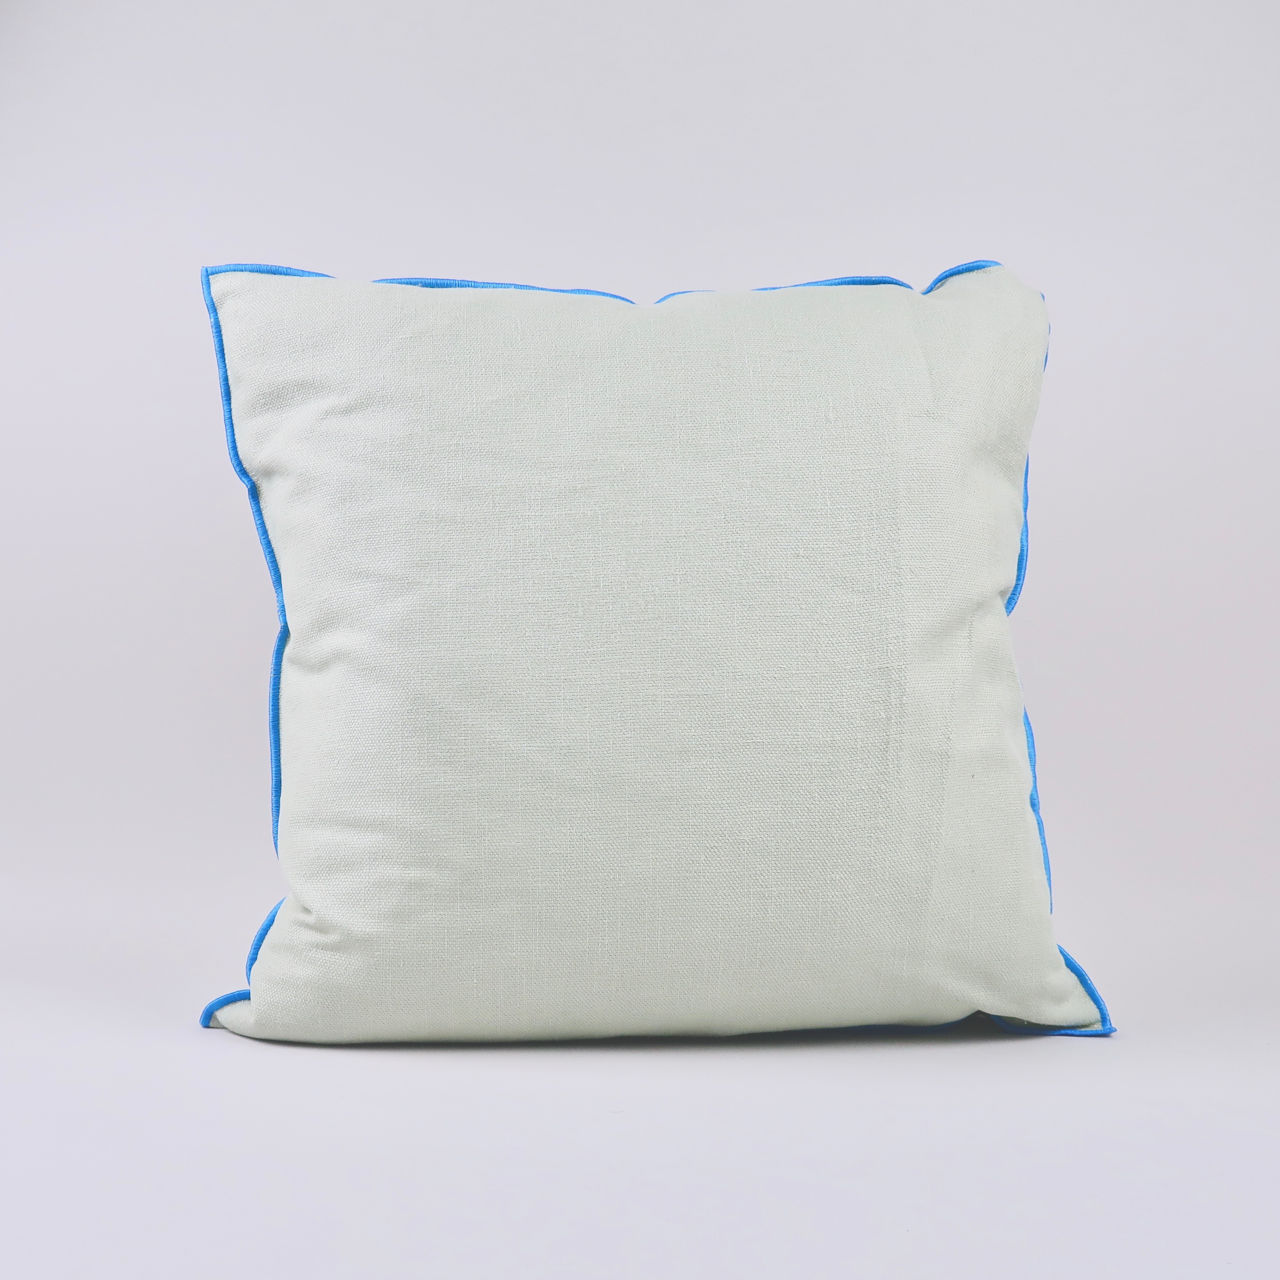 Outline Cushion - Grey Blue